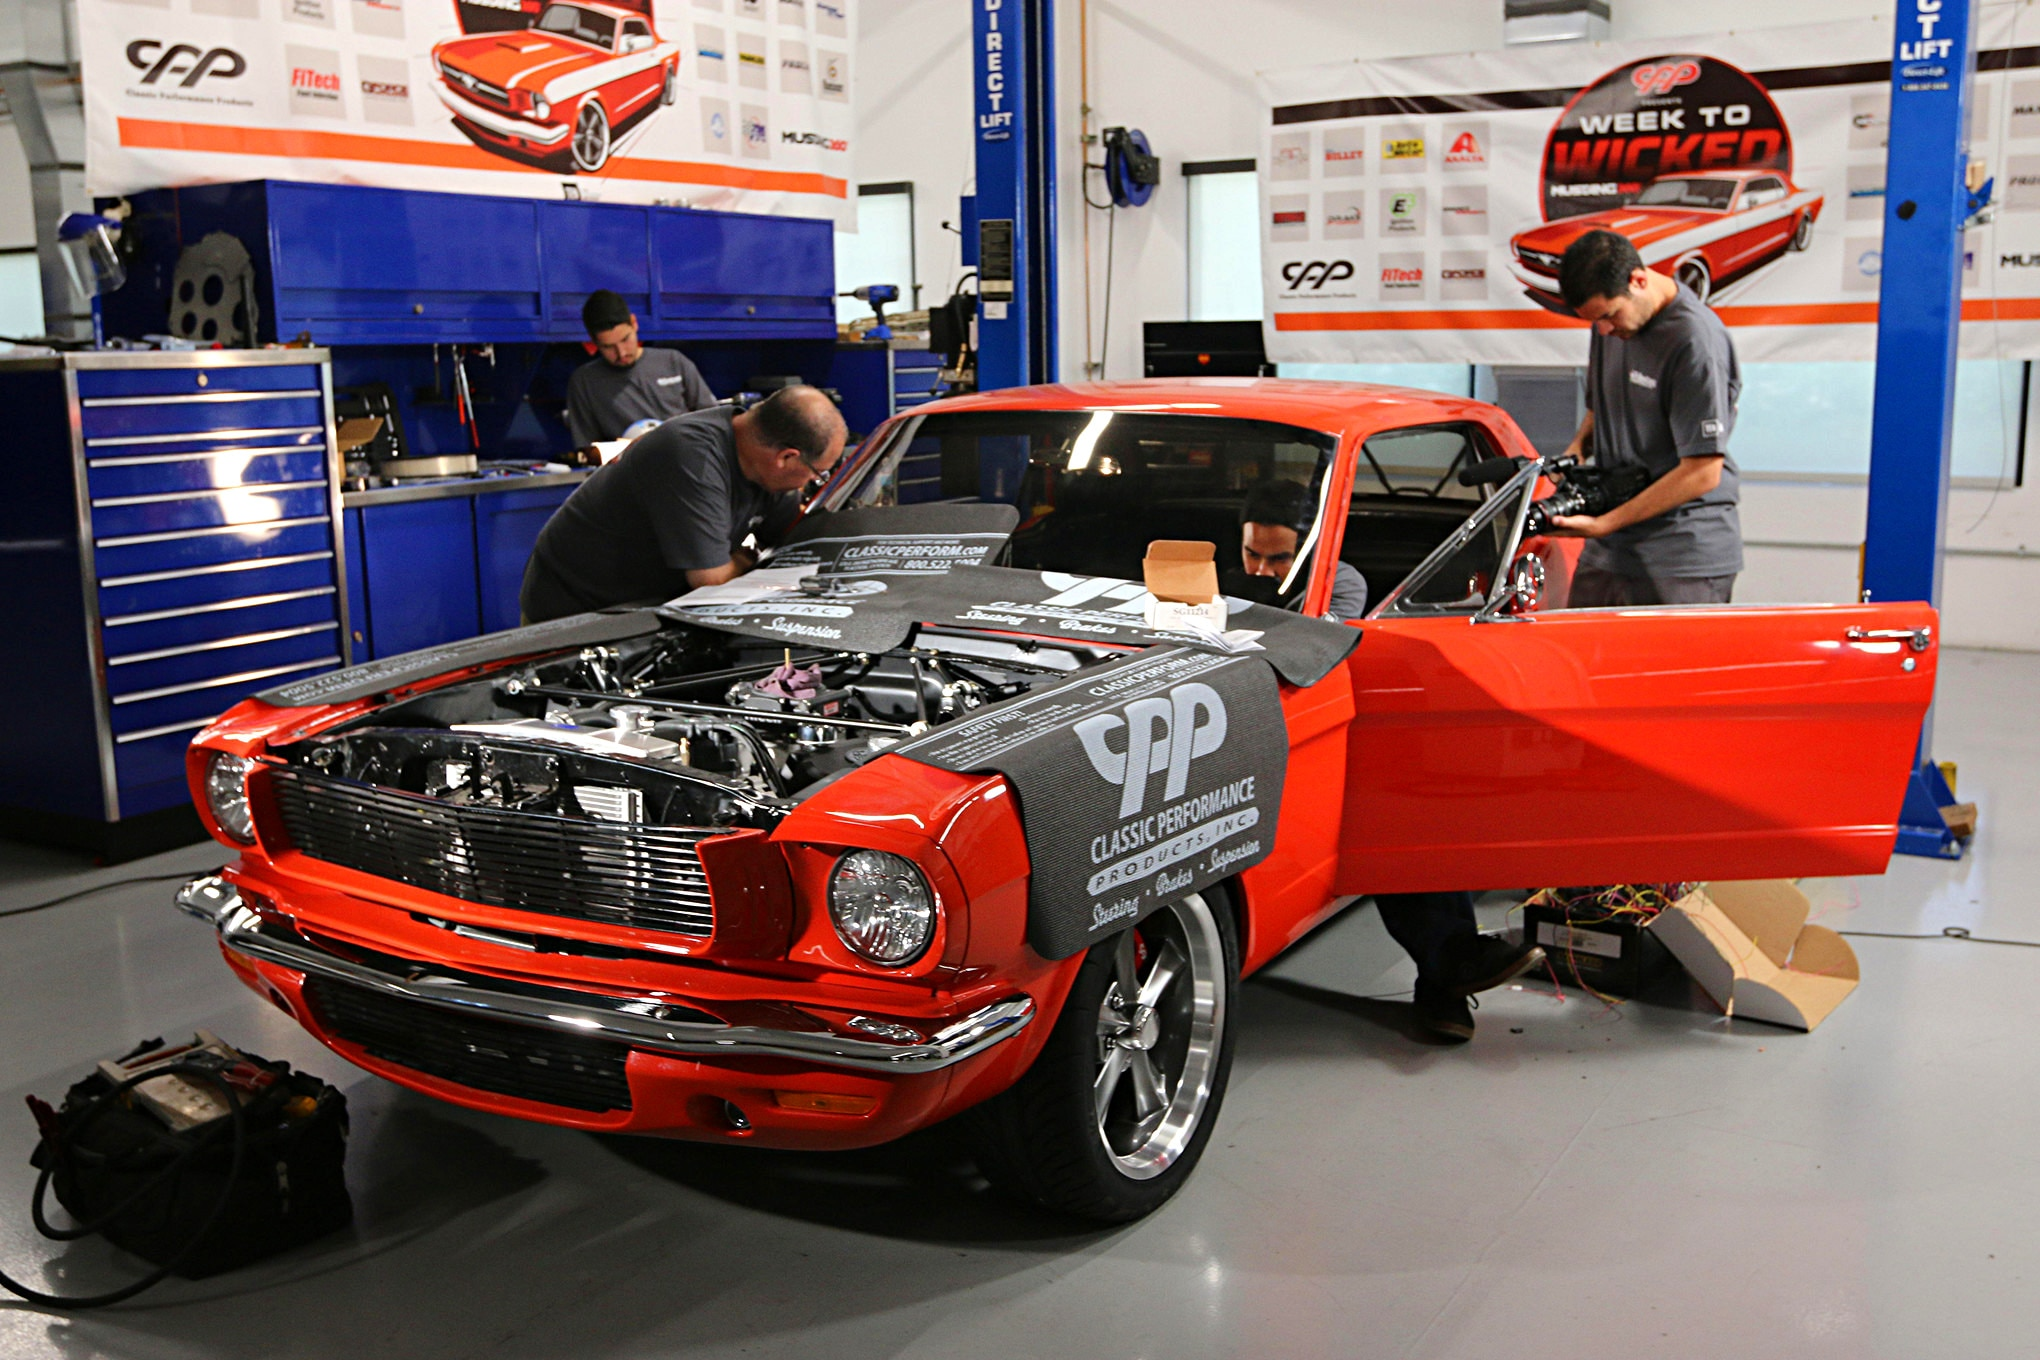 1966 Ford Mustang Week To Wicked Day 5 008